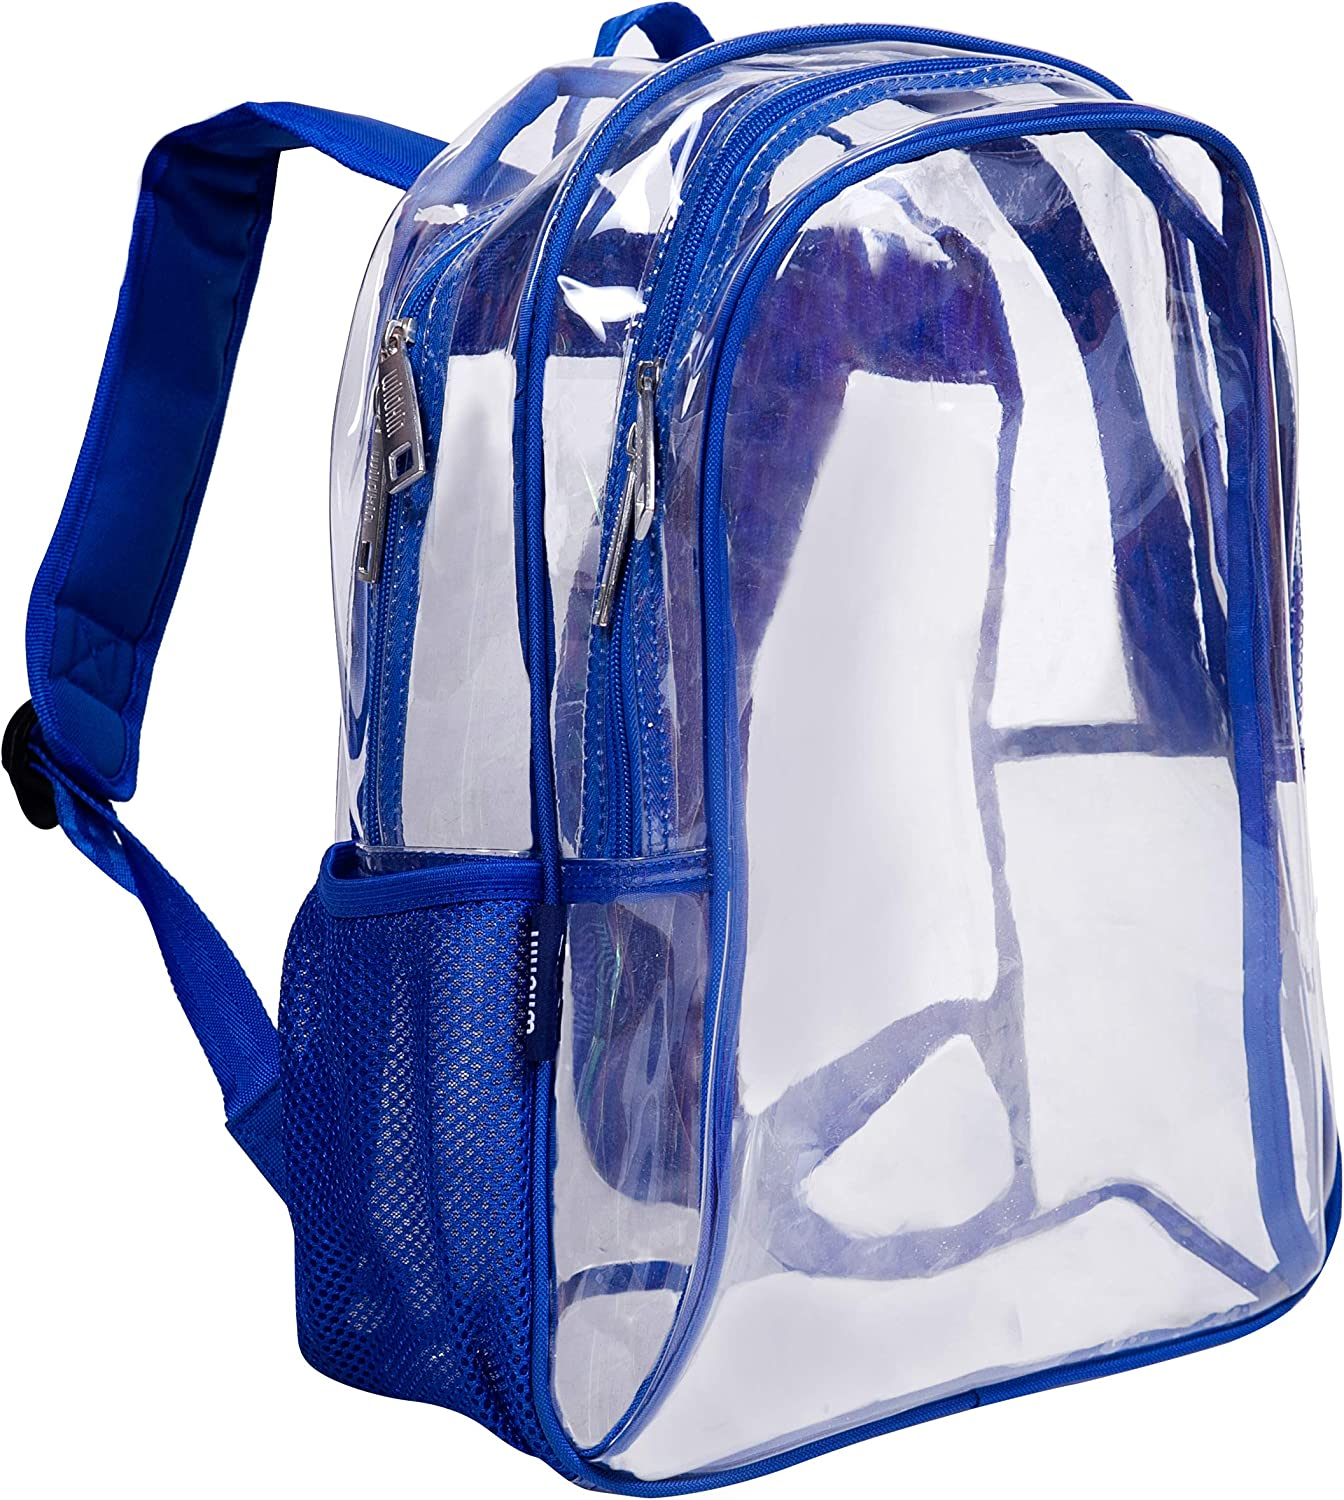 Wildkin Kids 15 Inch Backpack for Boys and Girls, Perfect Size for School and Travel, 600-Denier Polyester Fabric Backpacks Features Padded Back and Adjustable Strap, BPA-Free (Clear w Blue Trim)